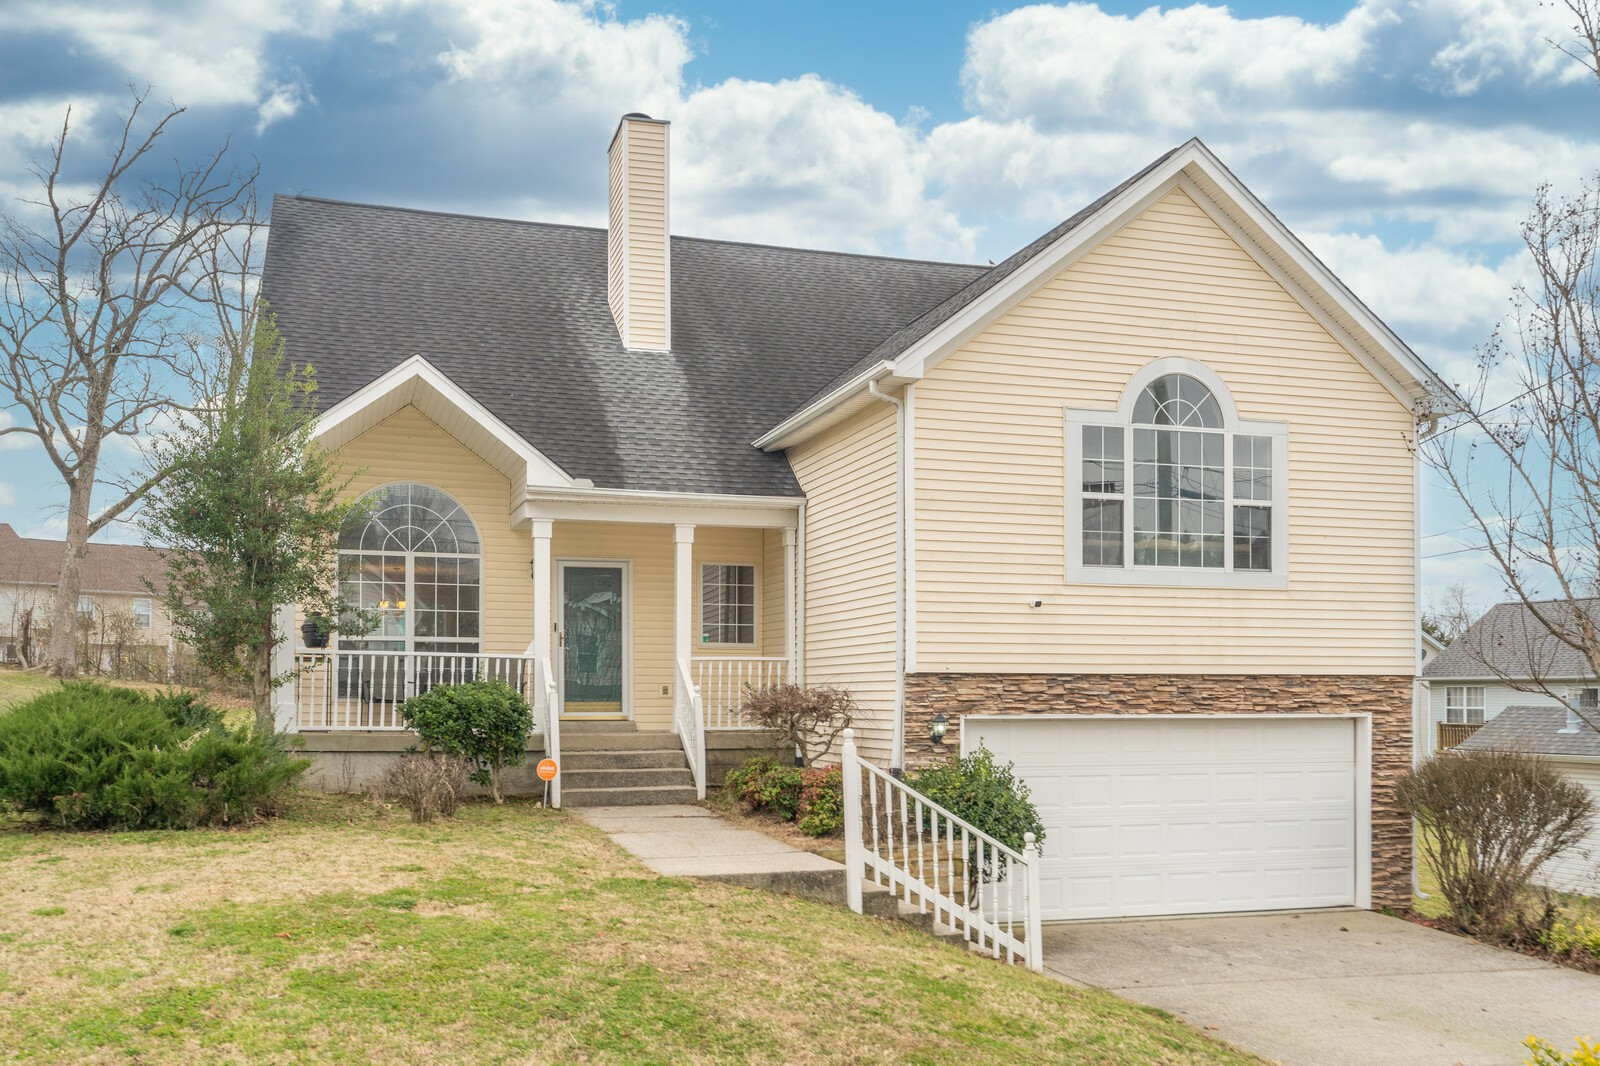 3604 Longhaven Xing Property Photo - Antioch, TN real estate listing